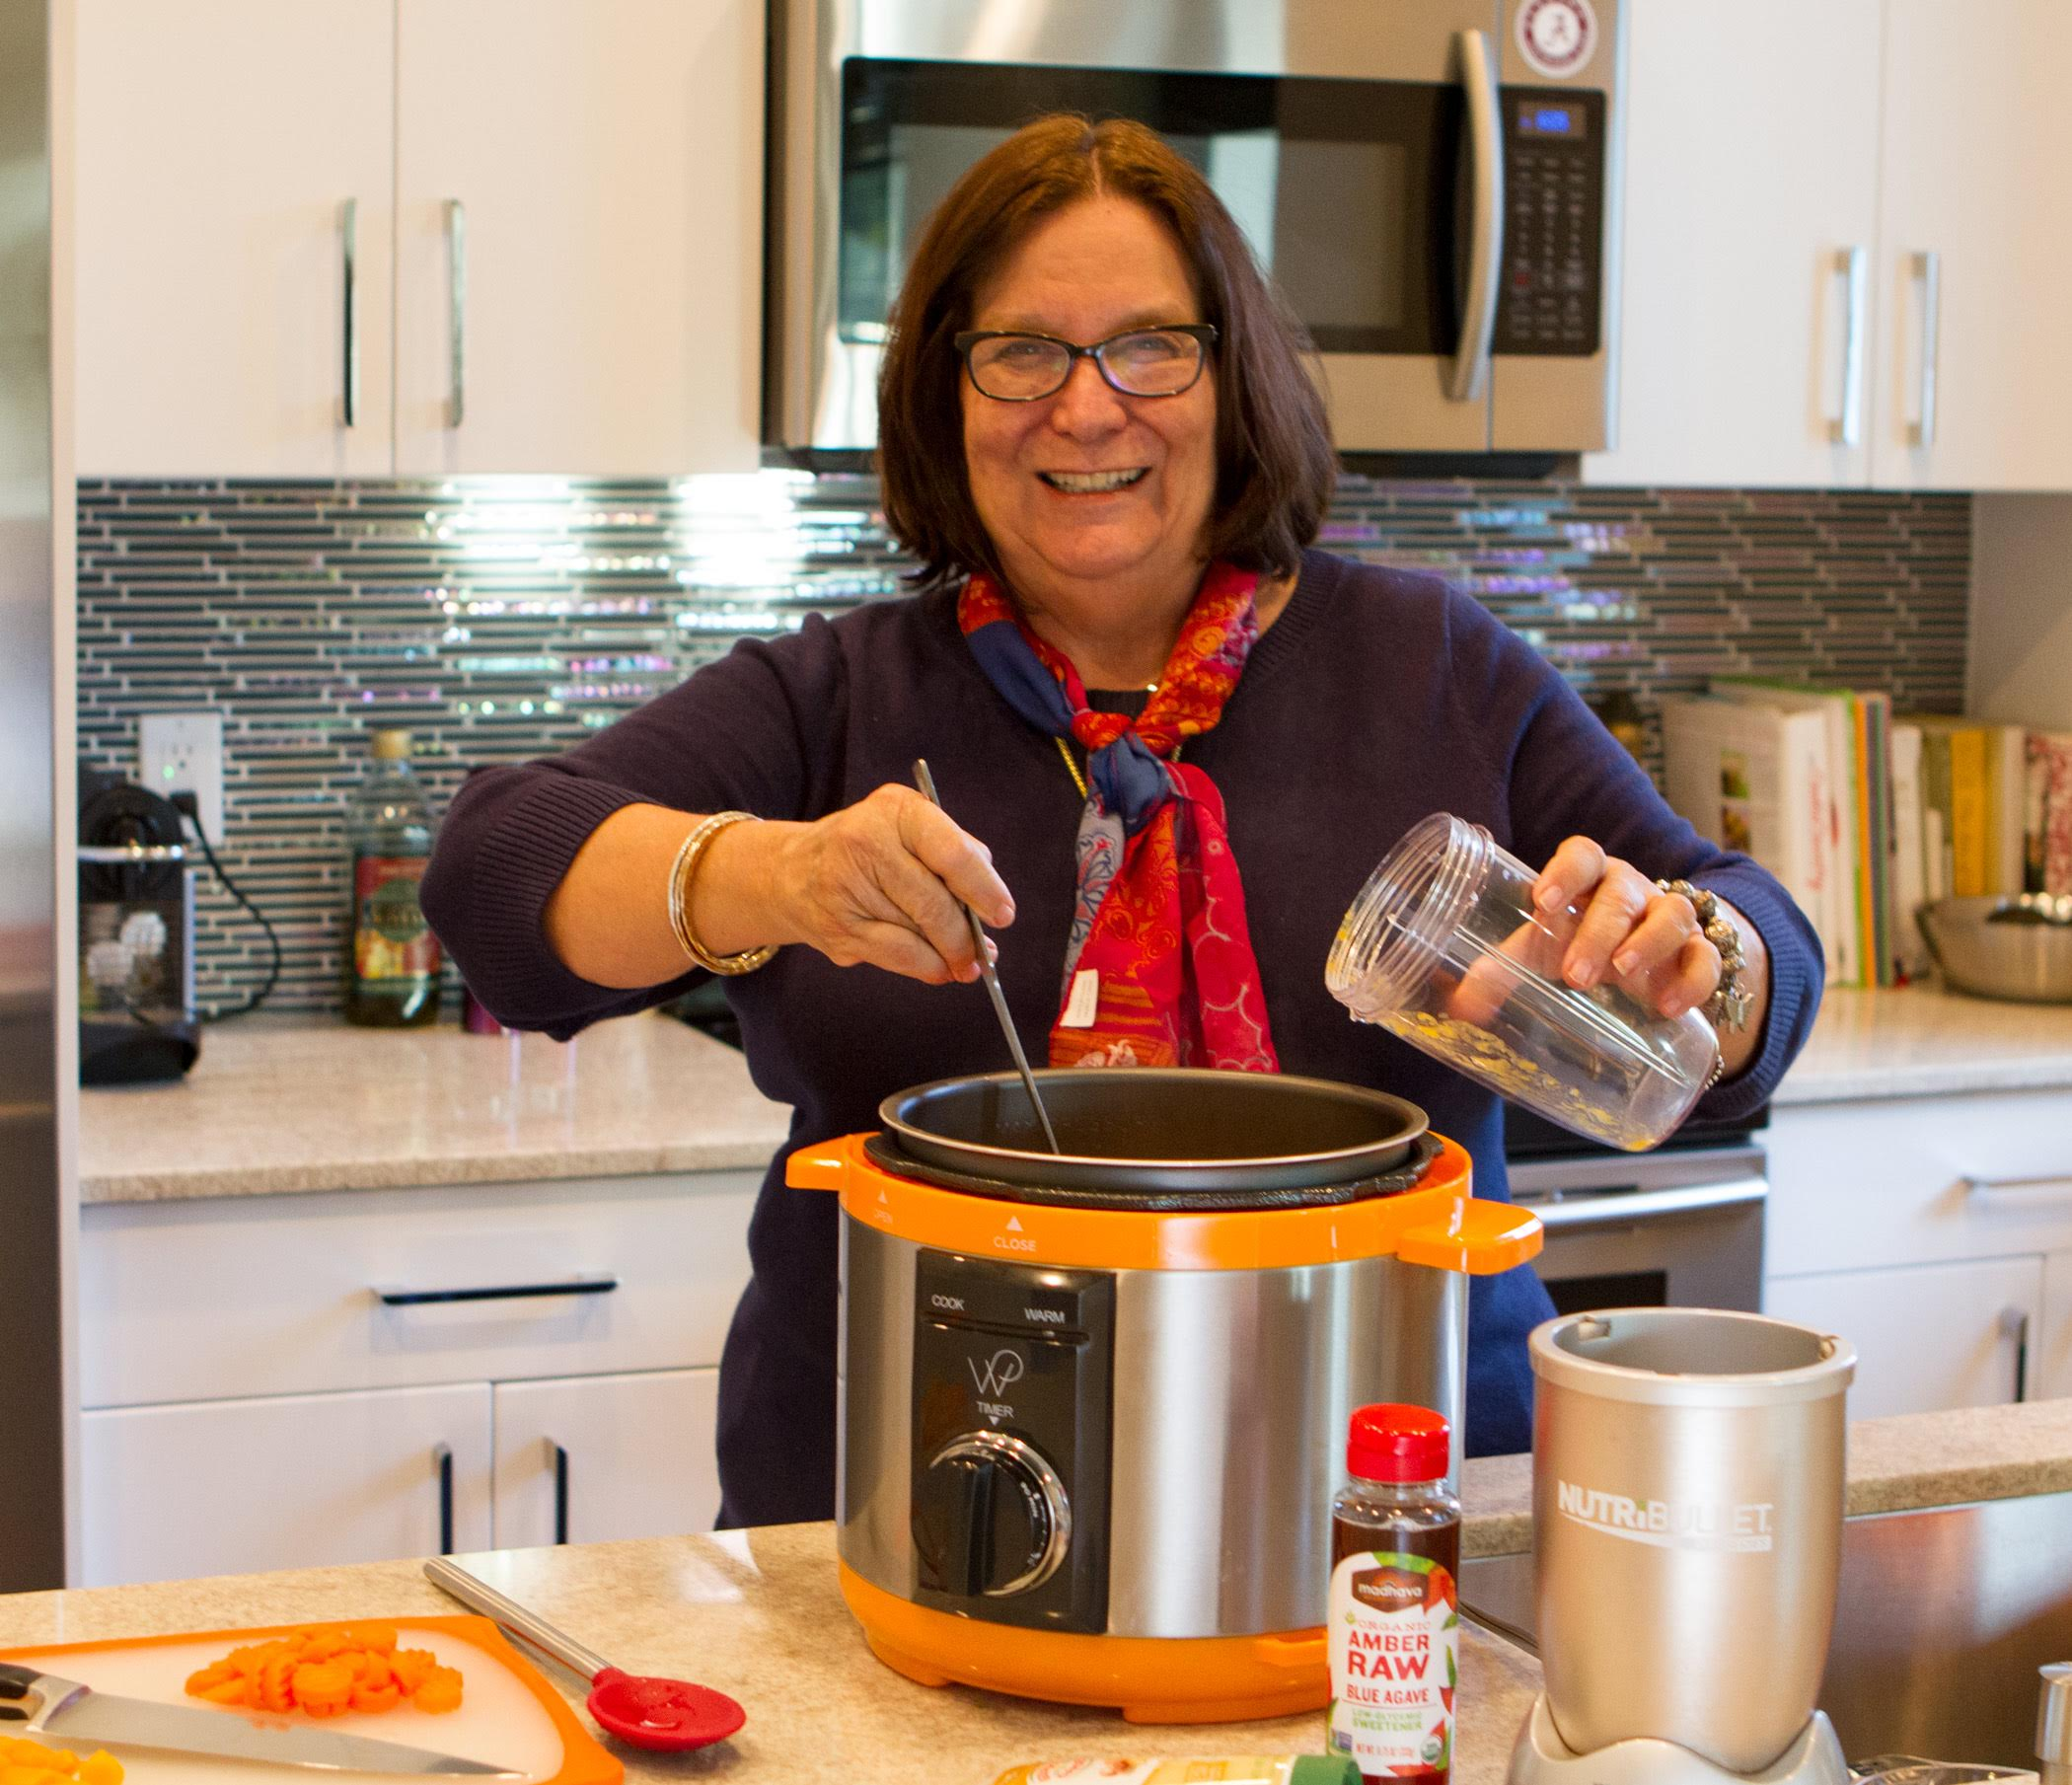 Don't let dysphagia keep you from cooking